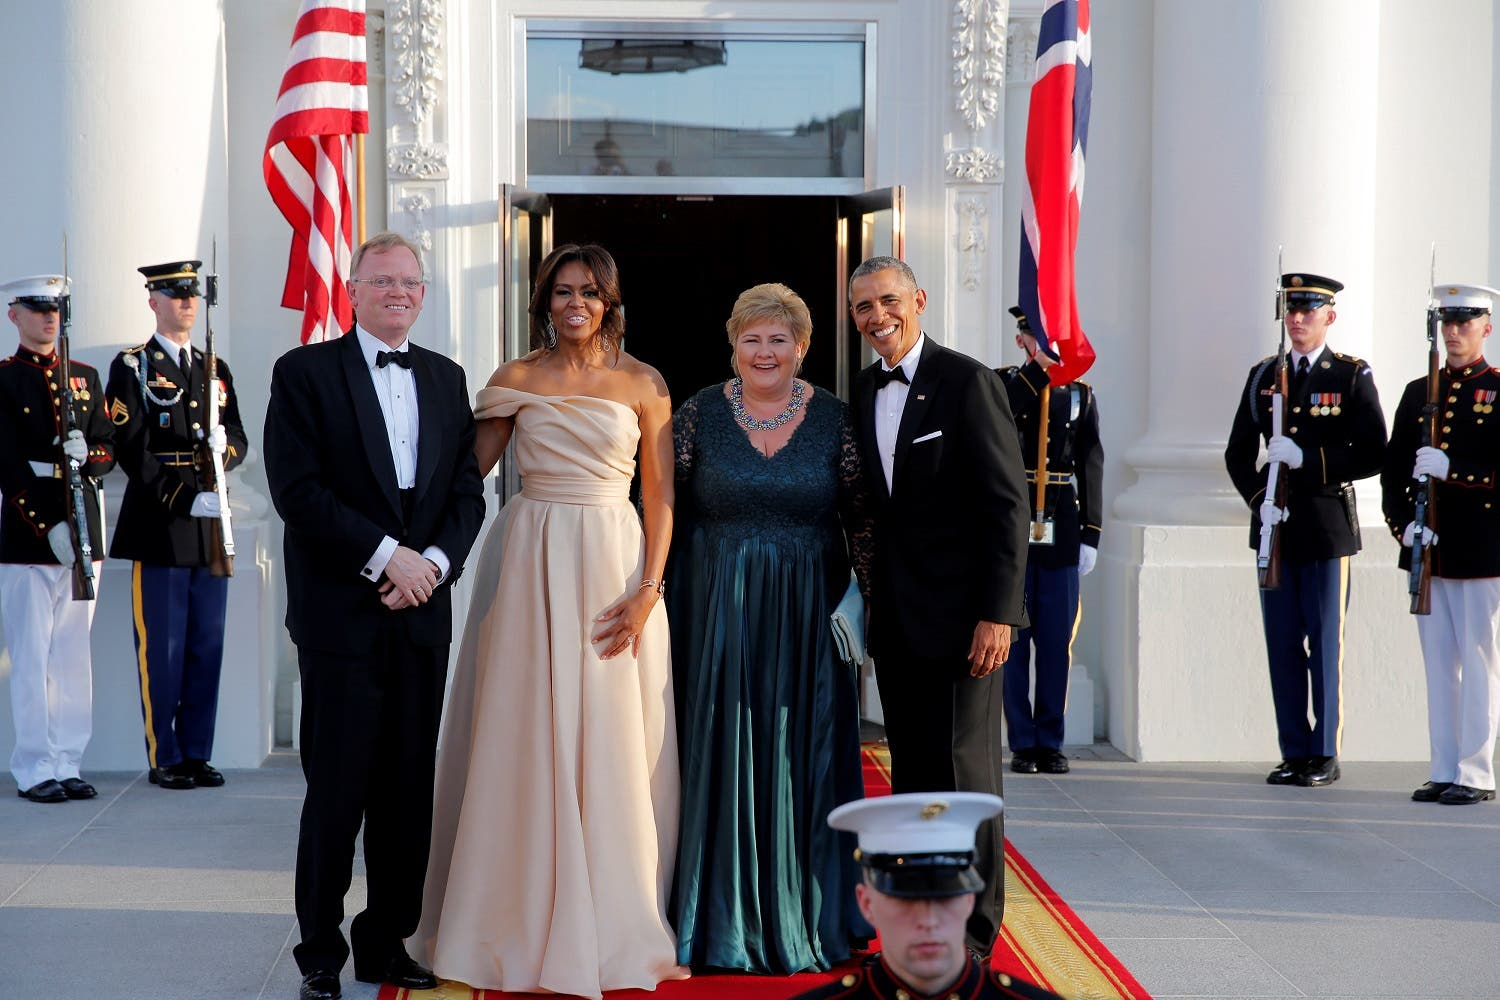 U.S. President Barack Obama and First Lady Michelle Obama welcome Erna Solberg (2nd R) Prime Minister of Norway and Mr. Sindre Finnes (L) at a state dinner in the White House during the U.S.-Nordic Leaders Summit in Washington, U.S. May 13, 2016. REUTERS